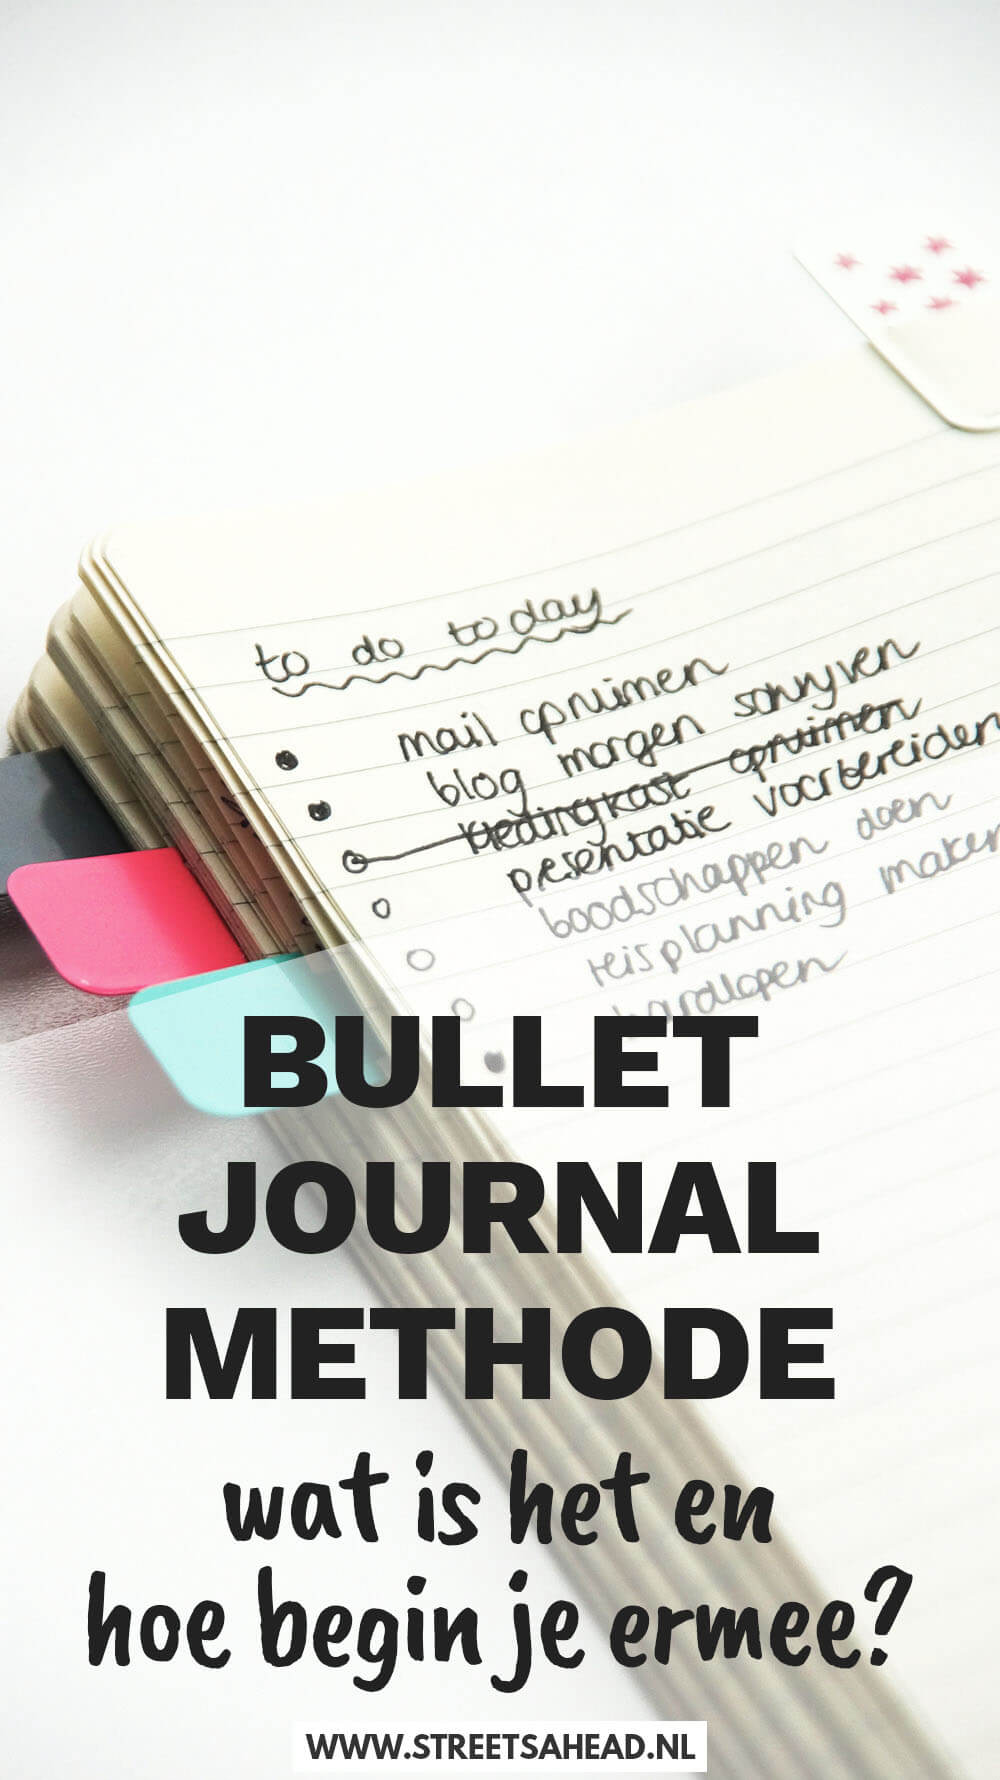 Bullet journal methode: wat is het en hoe begin je ermee?